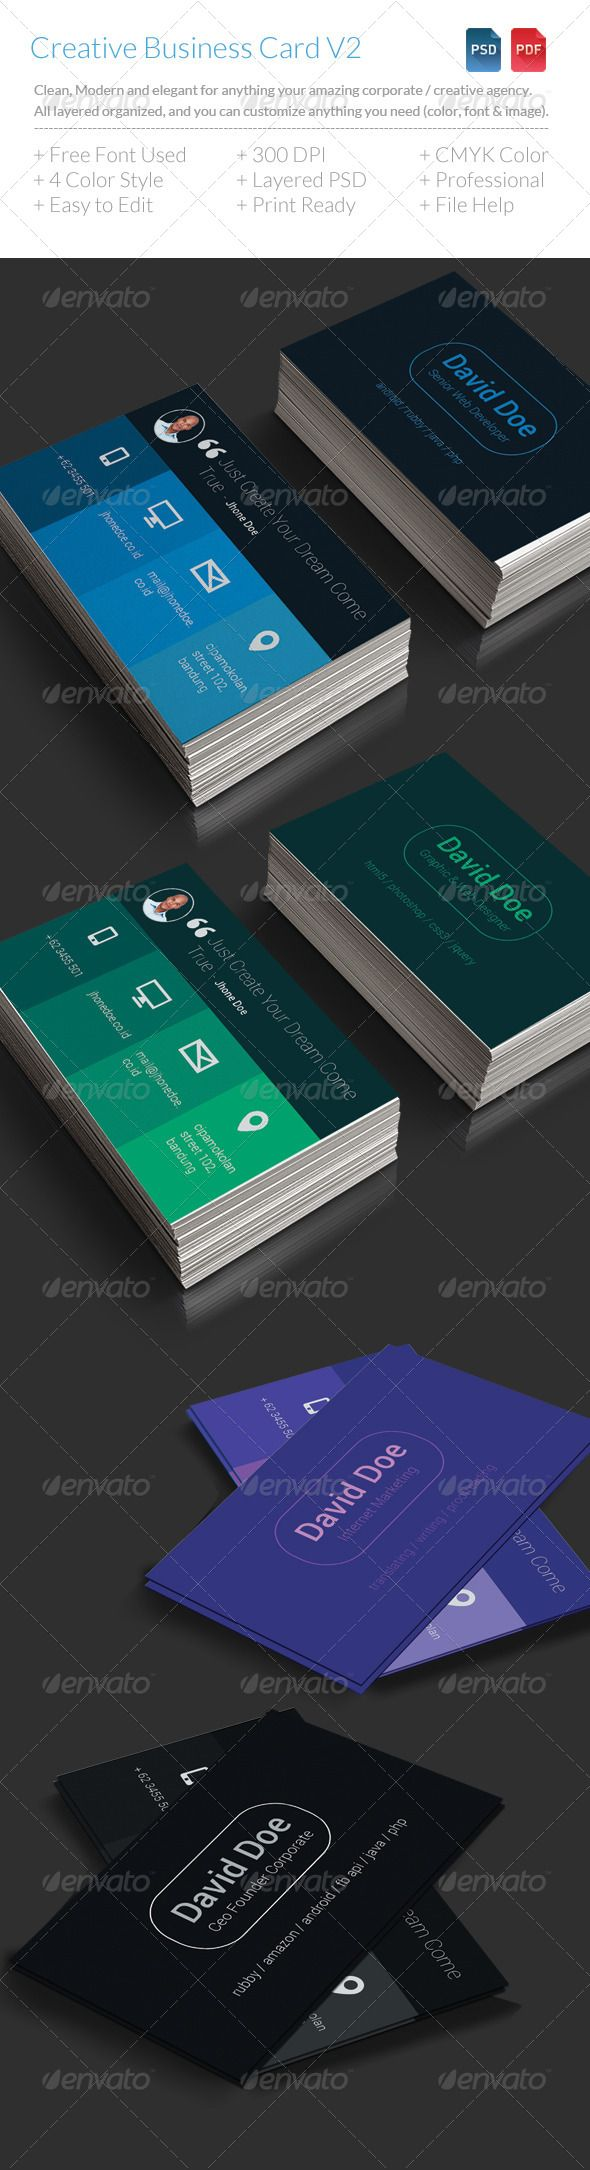 Creative Business Card Creative Business Card is simple, clean, flat style and elegant for anything creative agency / corporate and creative people. All layers can be changed, you can replace all the information on the business card in easy way with just a few clicks.  See it at http://graphicriver.net/item/creative-business-card/7126886